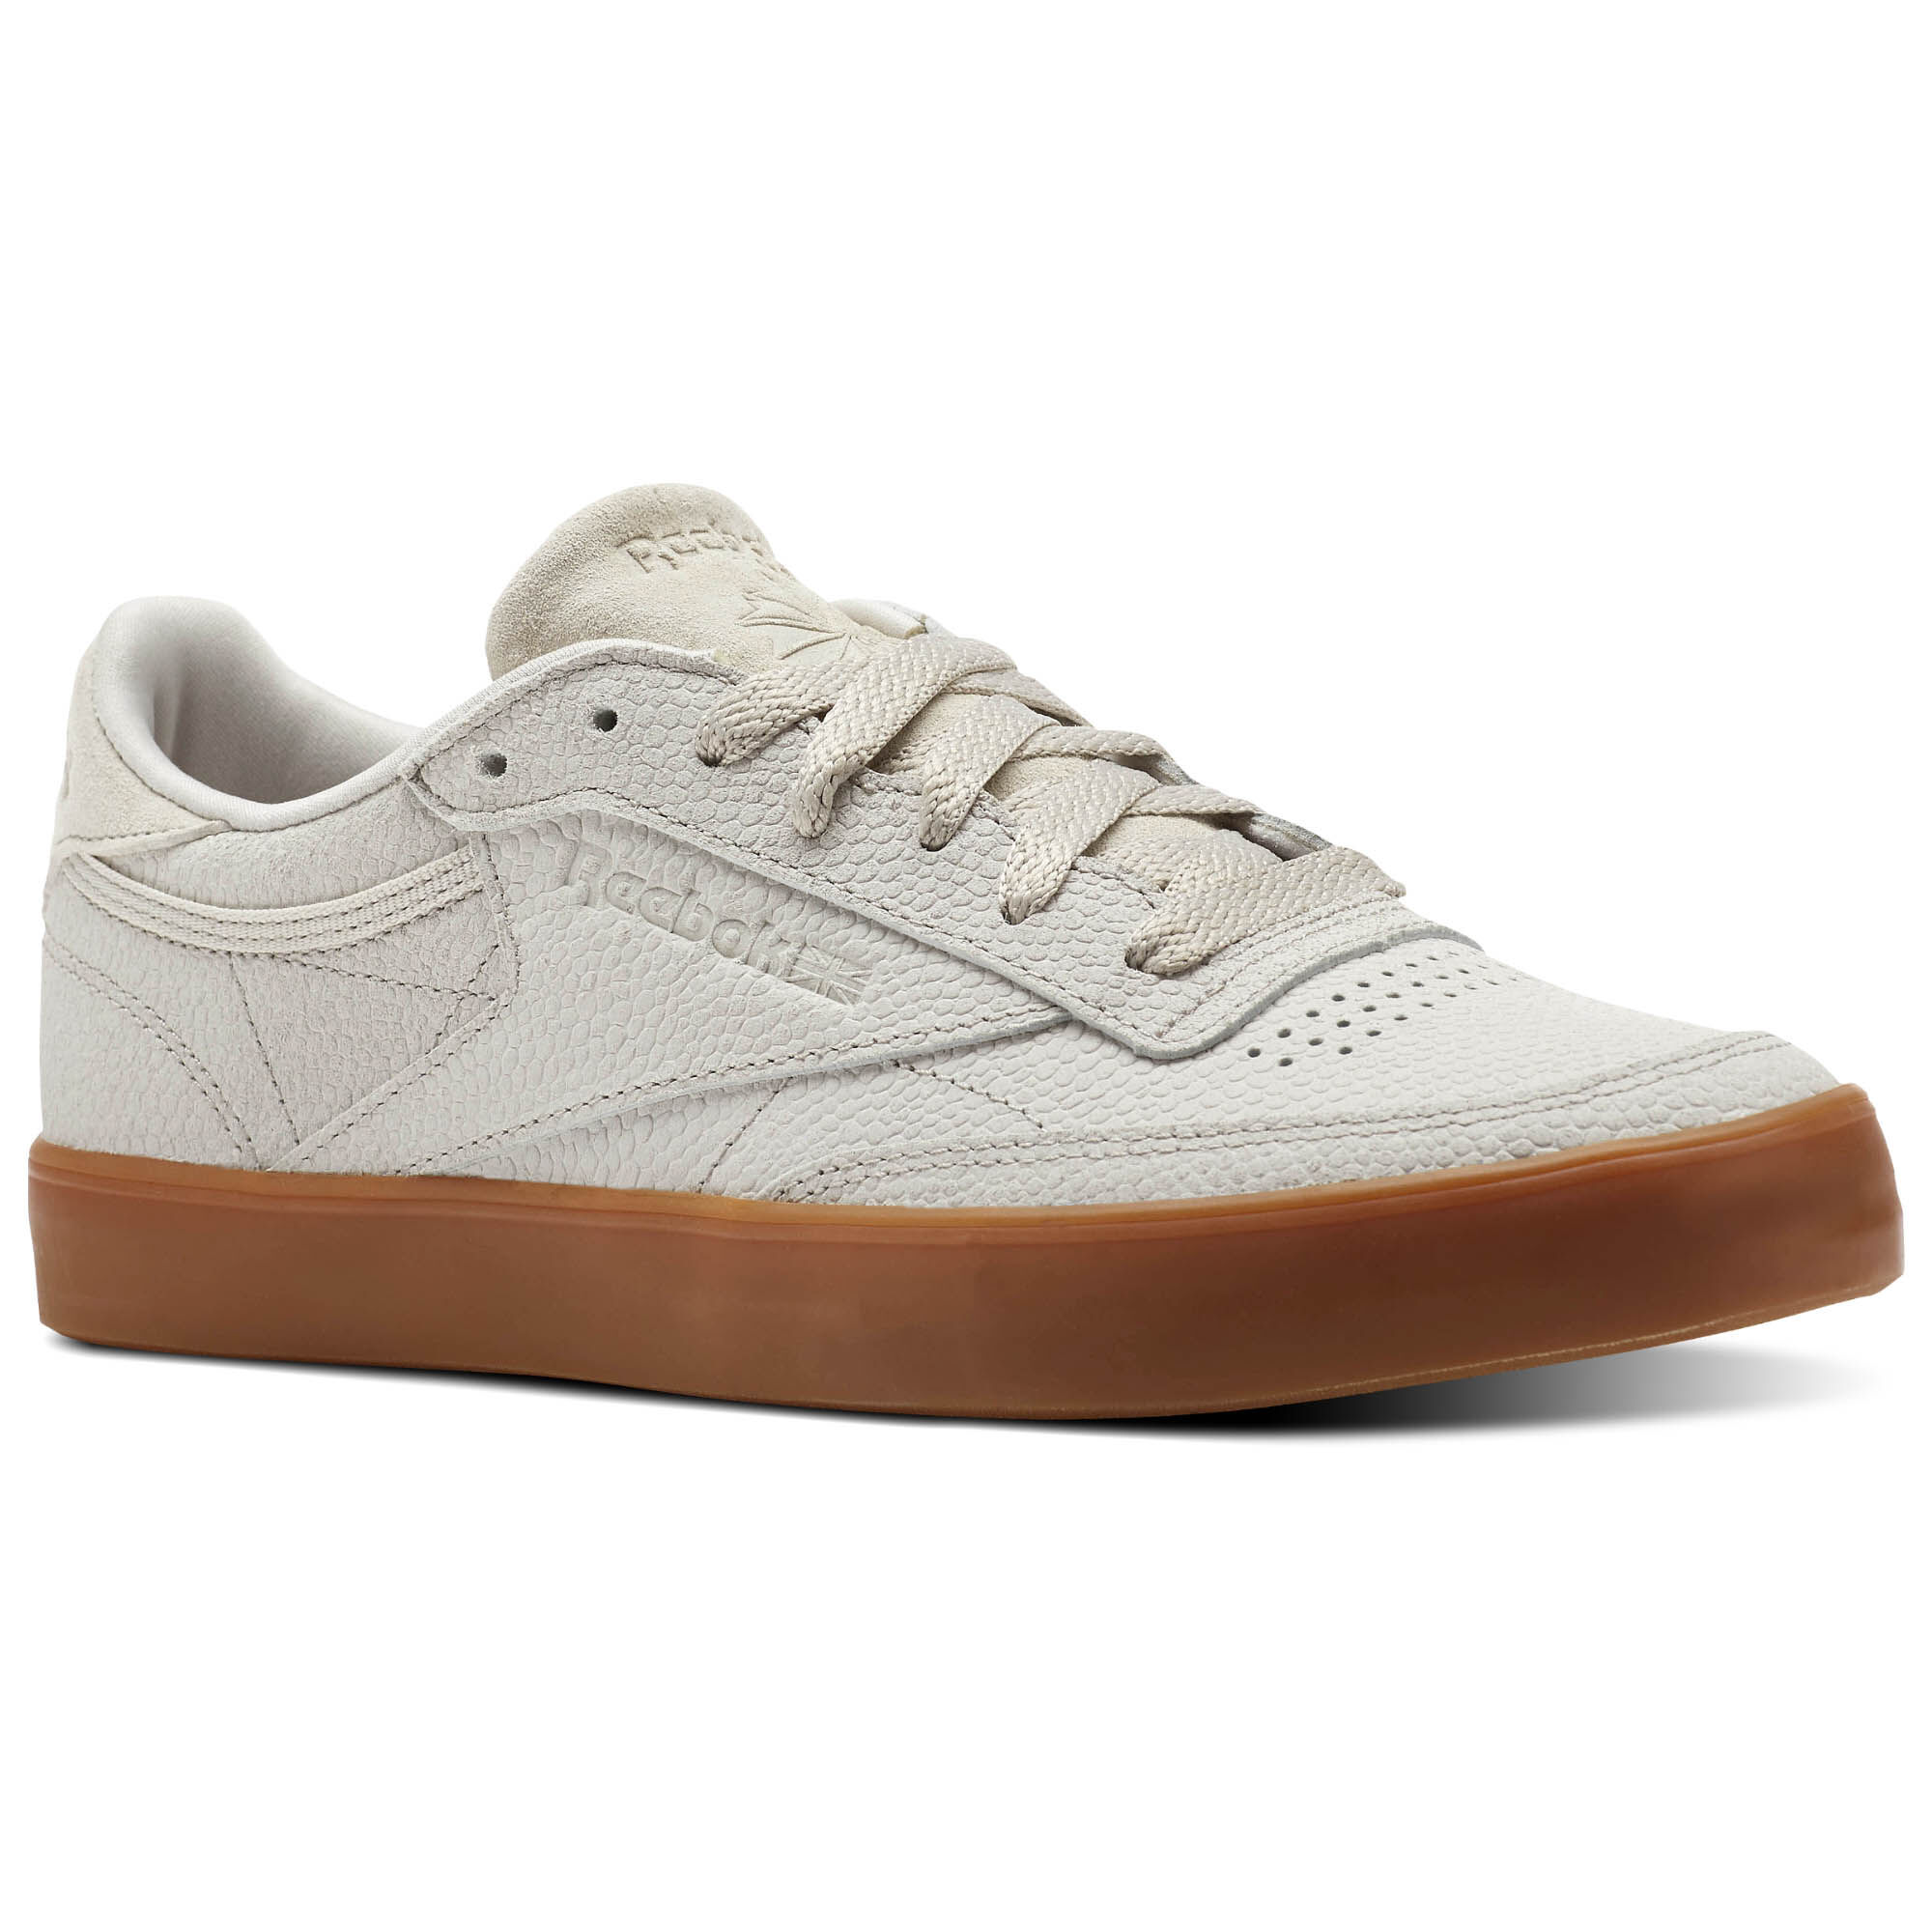 Reebok Classic CLUB C 85 FVS - Trainers - bare beige 3v1X8GKcH